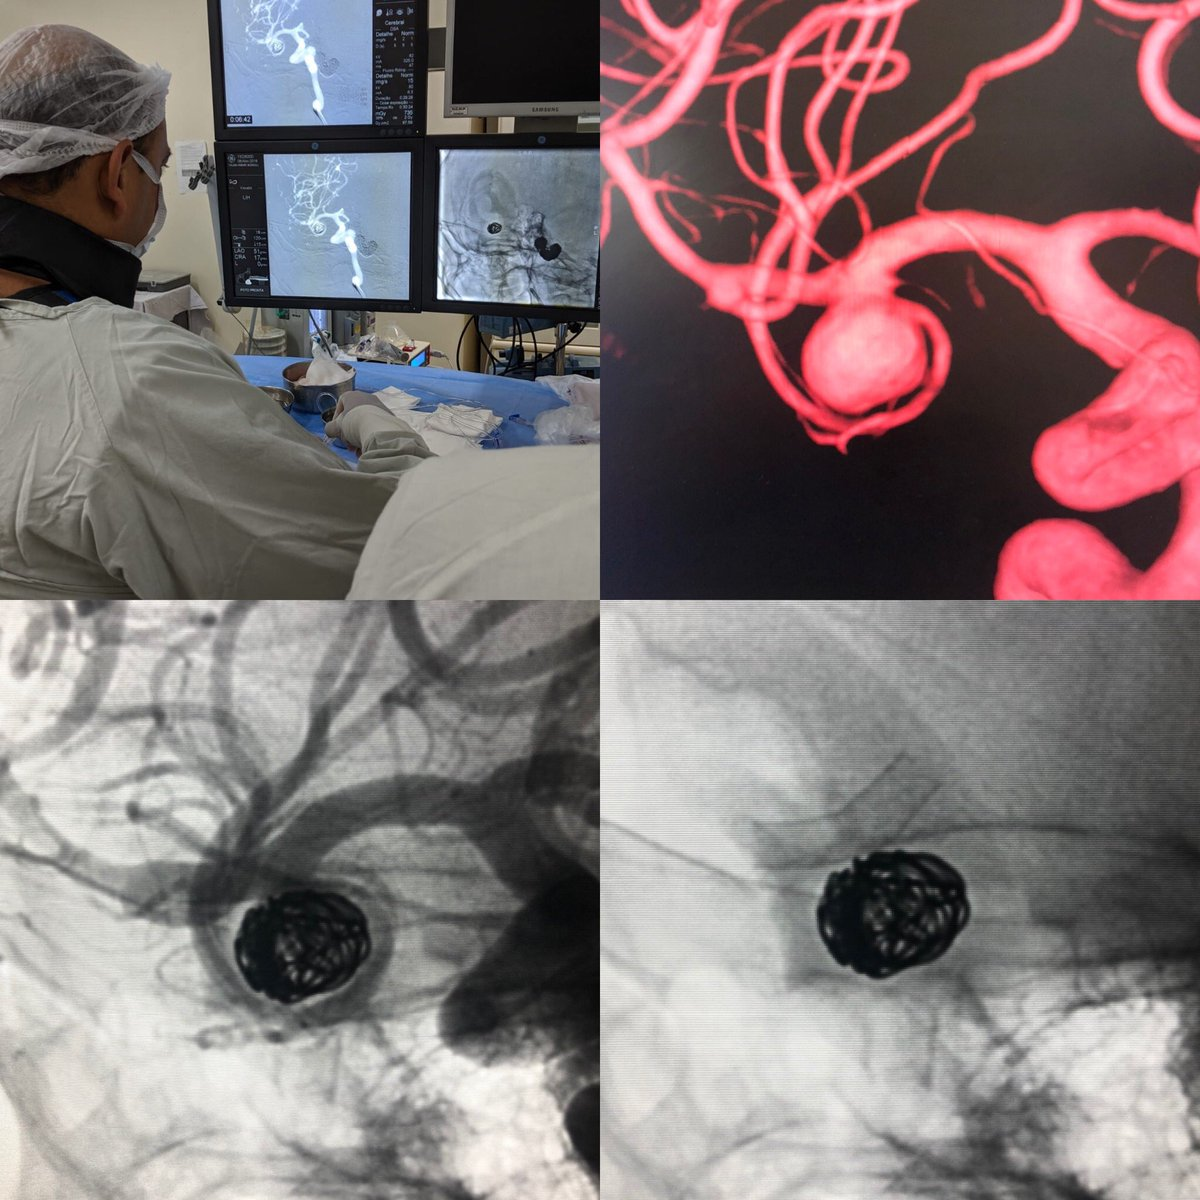 First case using P48 HPC in Brazil. Endovascular treatment of a MCA aneurysm with coils and flow diverted using only Aspirin. Glad to start this research protocol in our hospital. #phenox #usp #fmrp